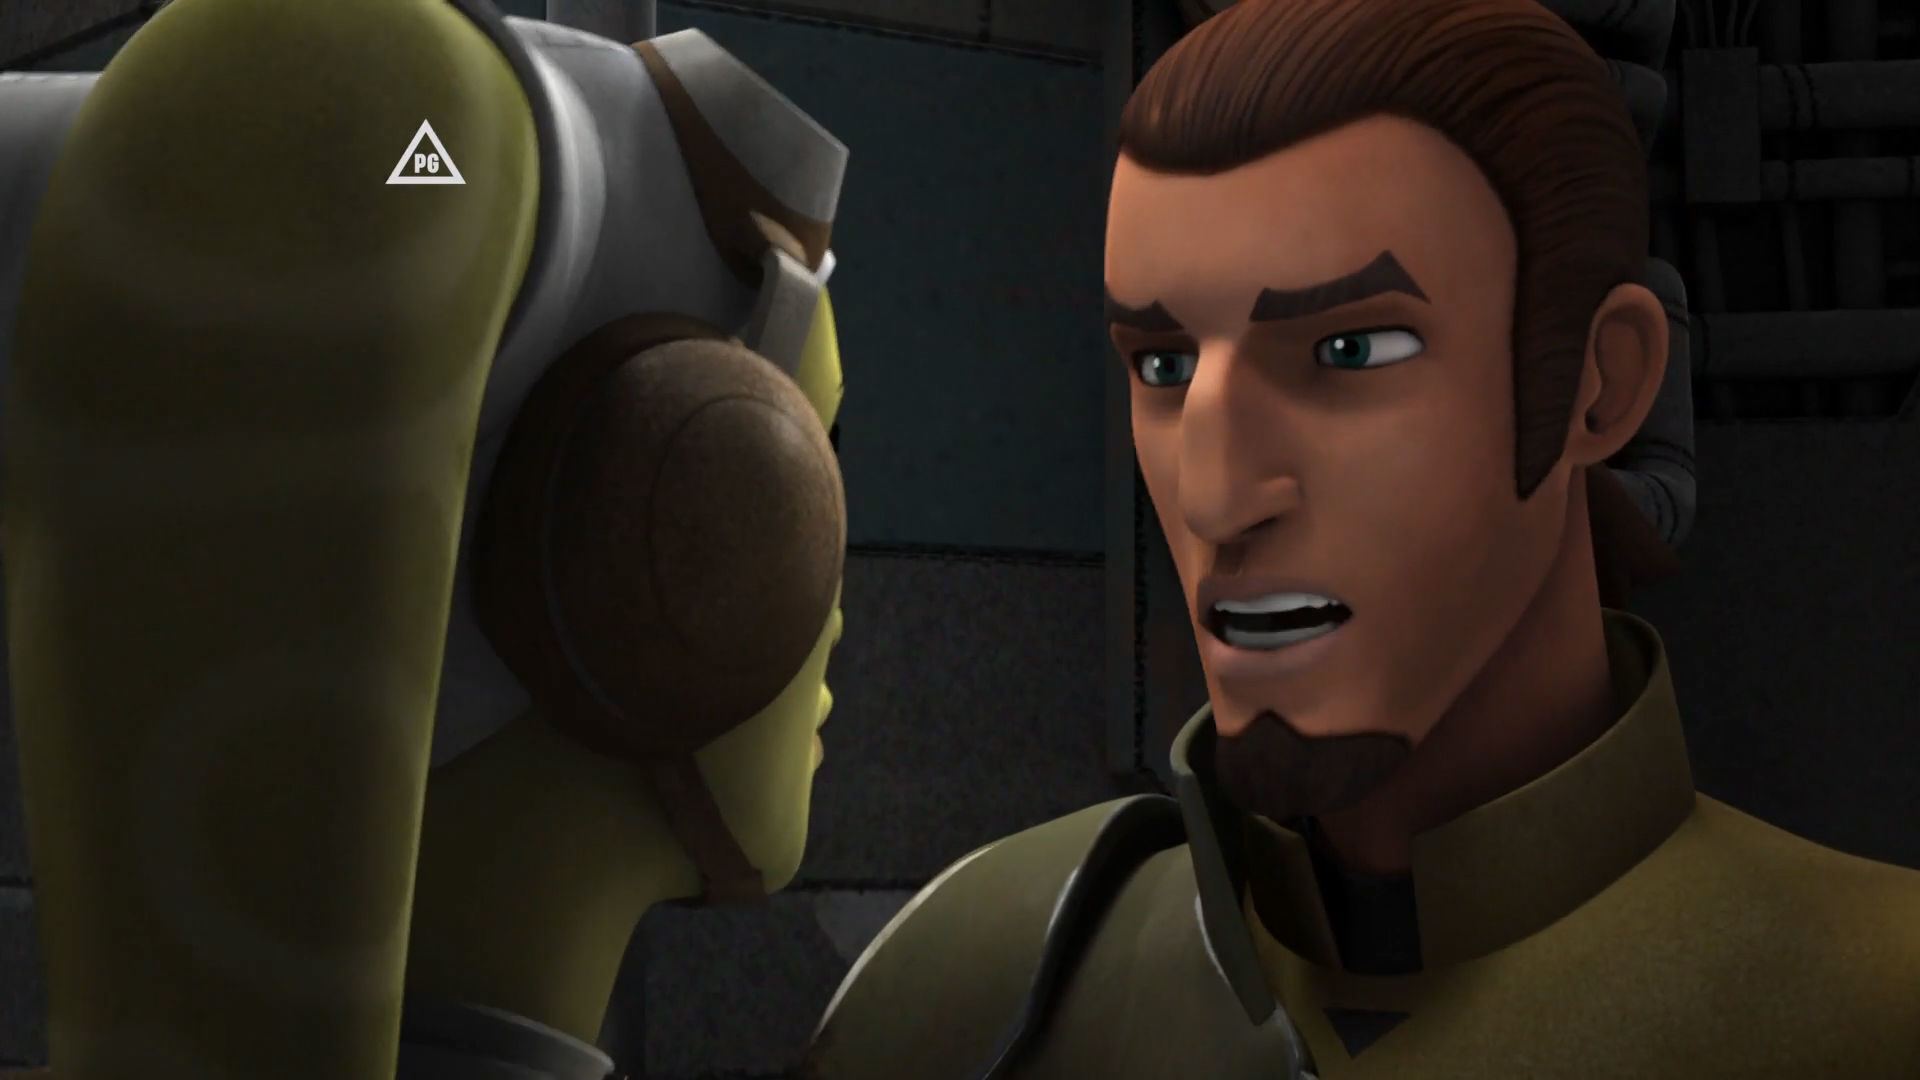 Star Wars Rebels new episodes on Disney XD - Trailer 1